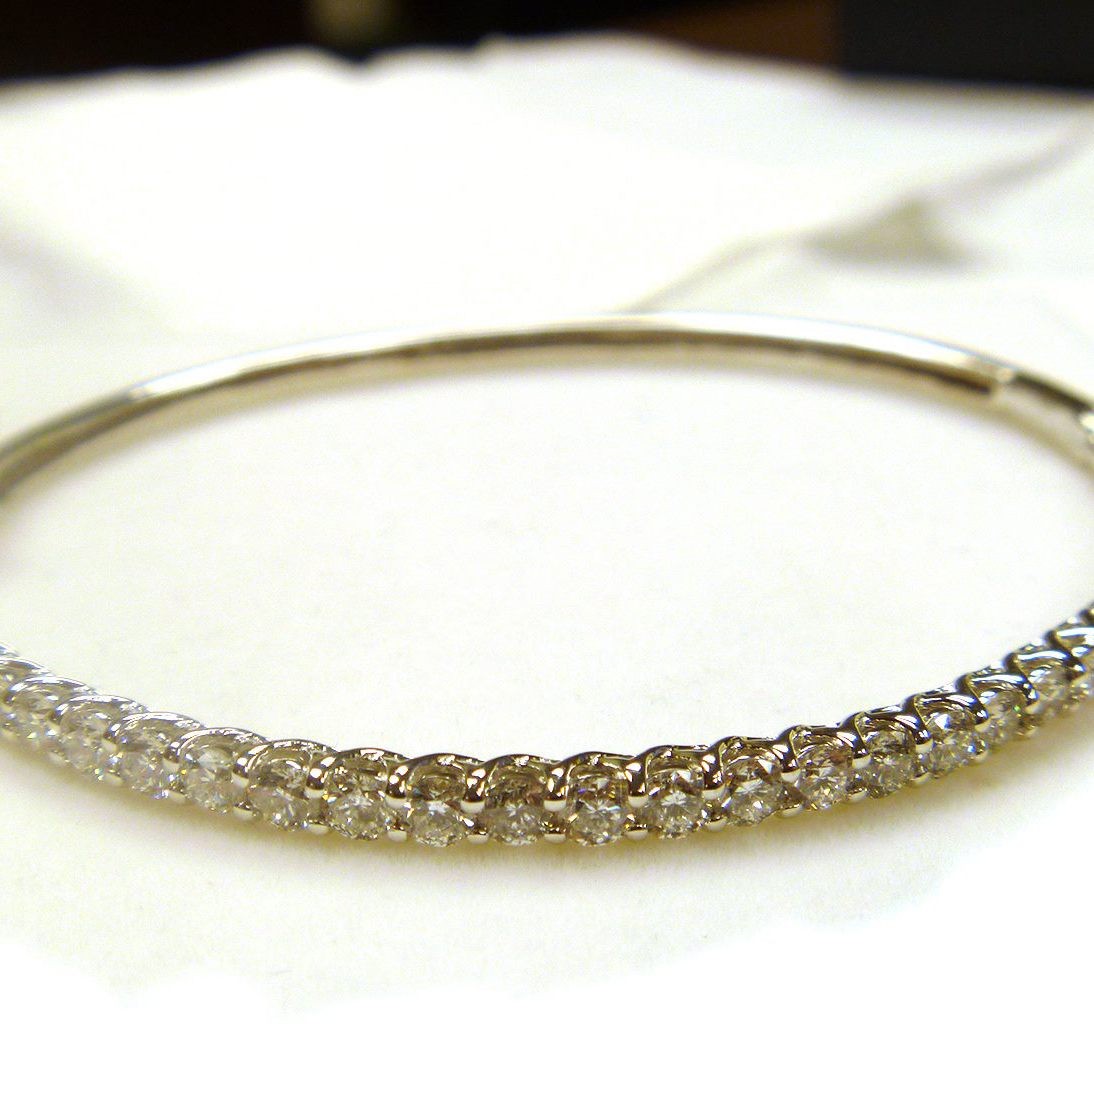 Luxury Stackable Diamond Bangle Bracelet 14k White Gold (2.03ct)